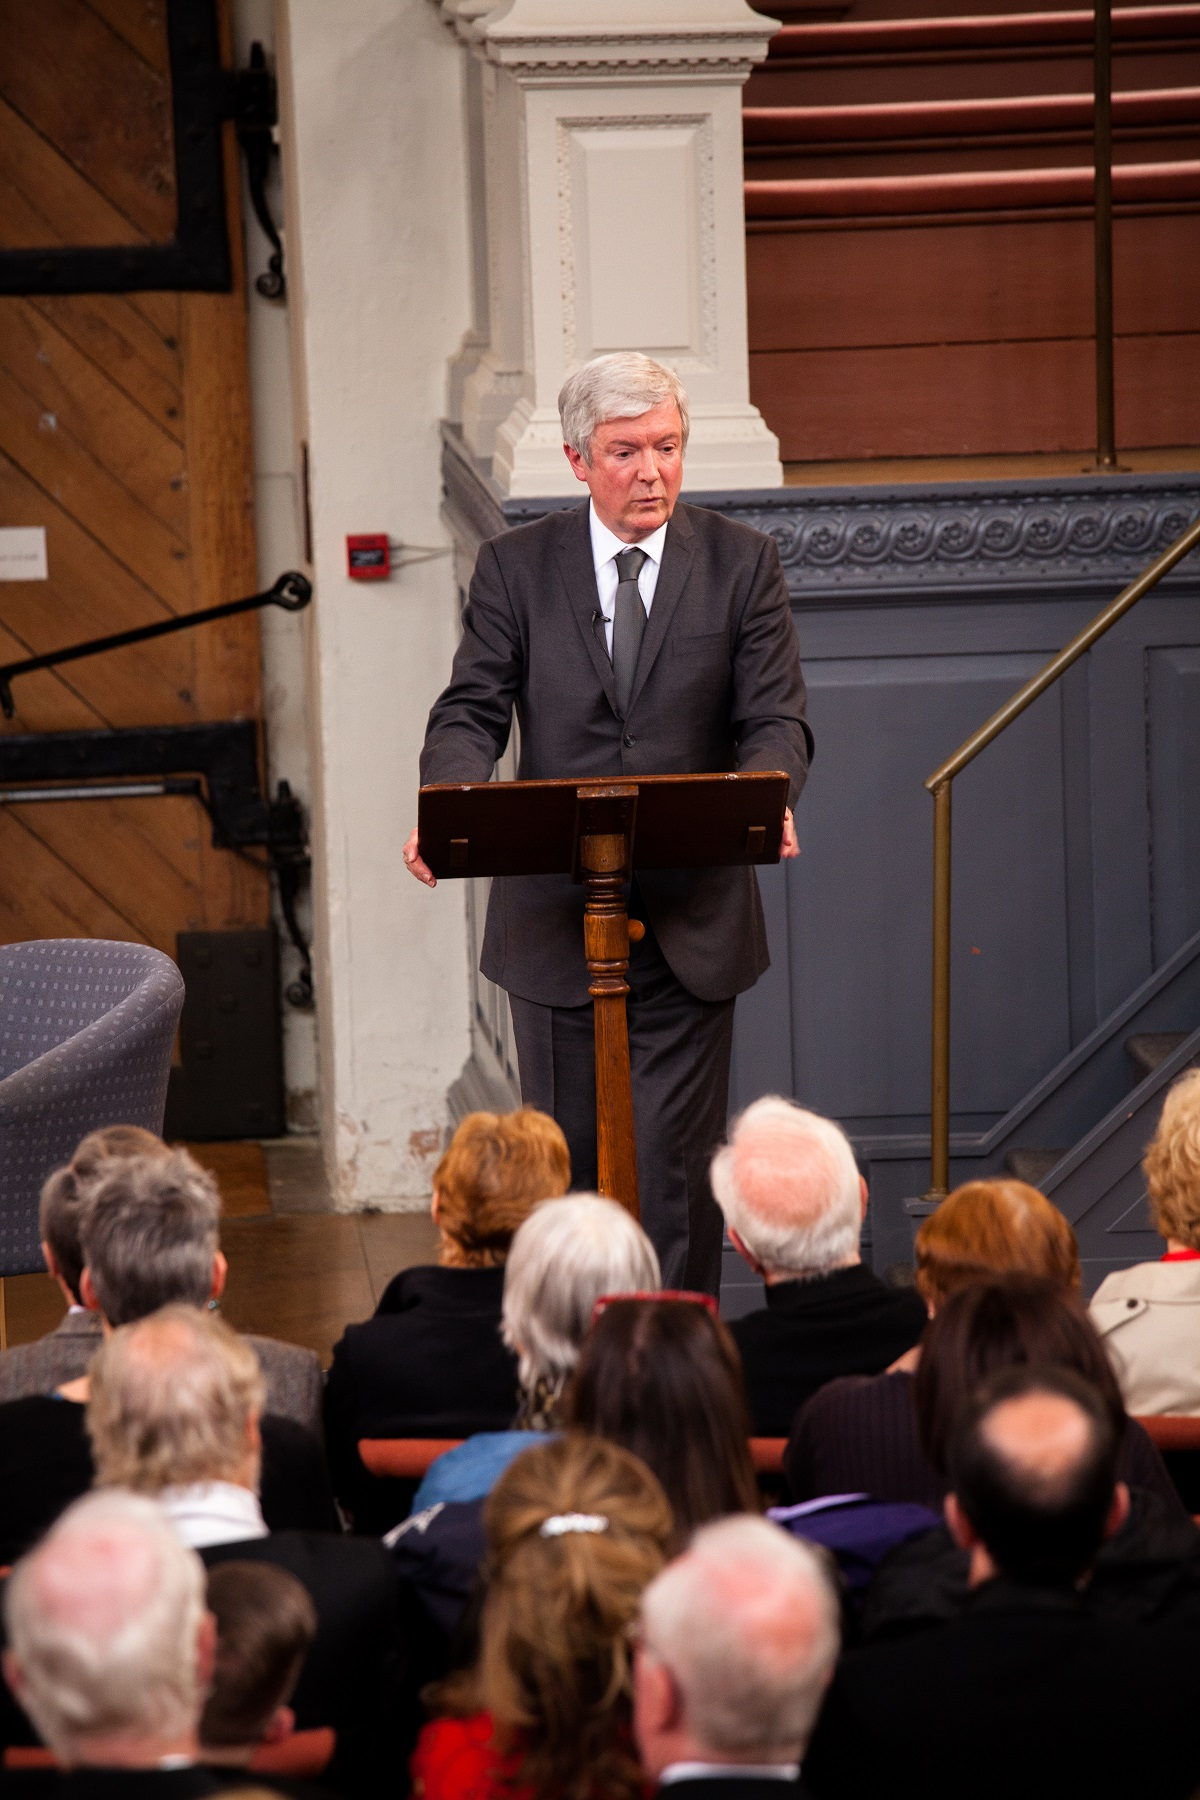 The 2014 John Donne Lecture in the Sheldonian Theatre